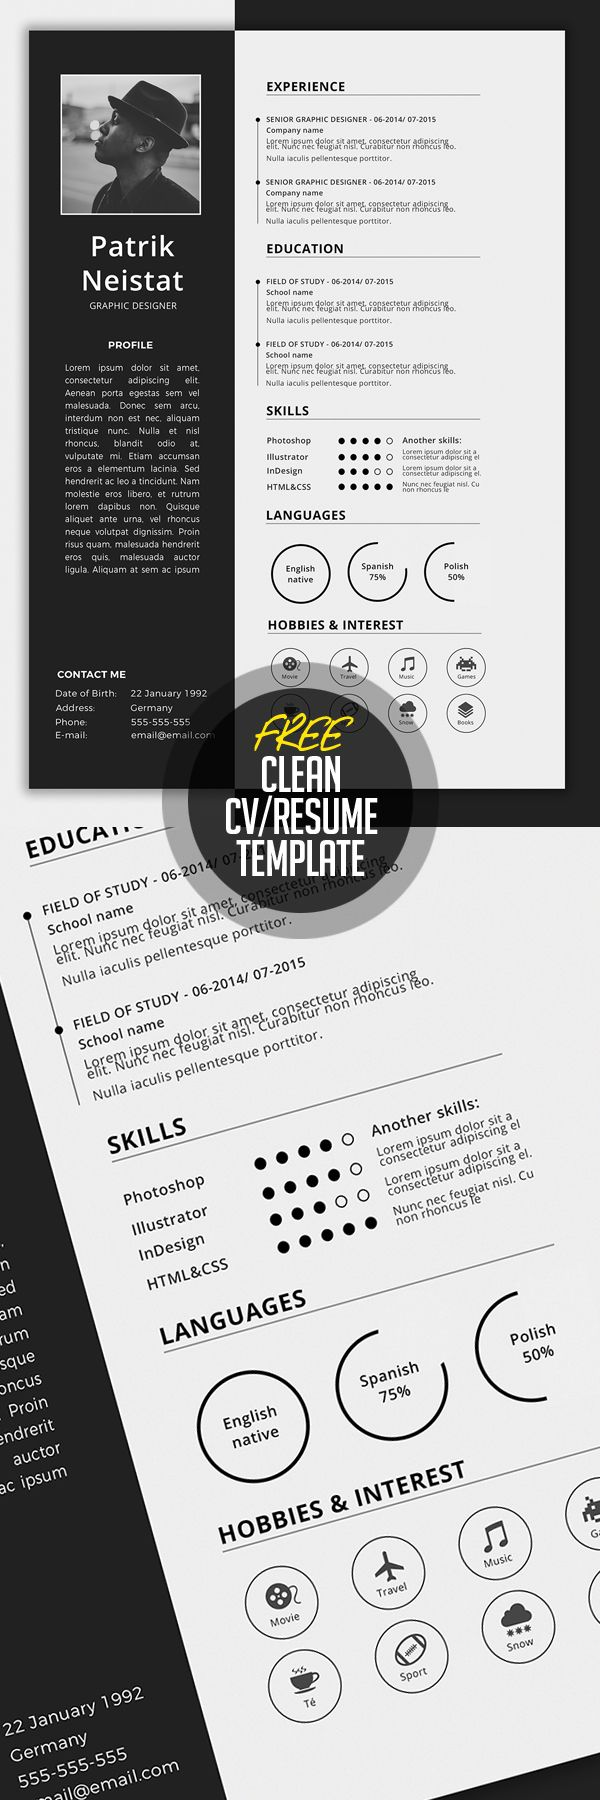 best ideas about resume templates simple cv resume template more